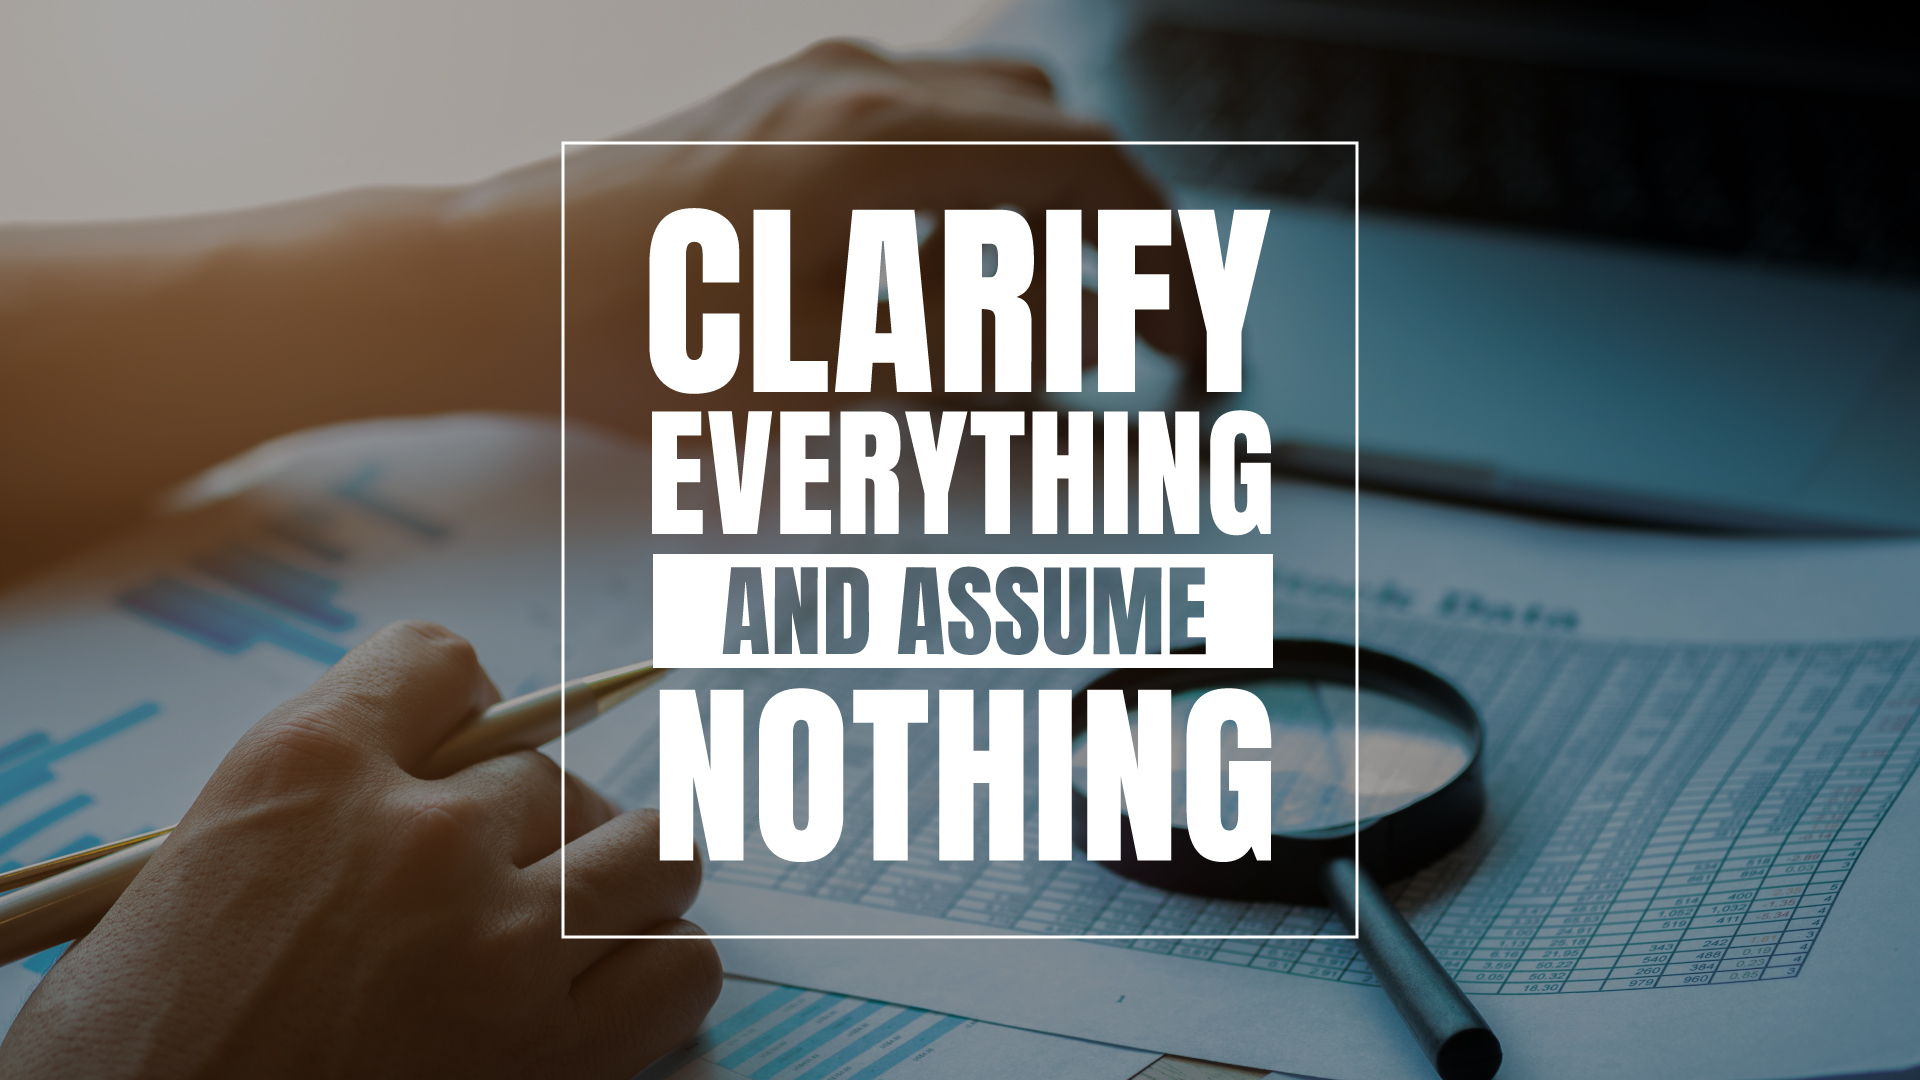 Clarify Everything and Assume Nothing